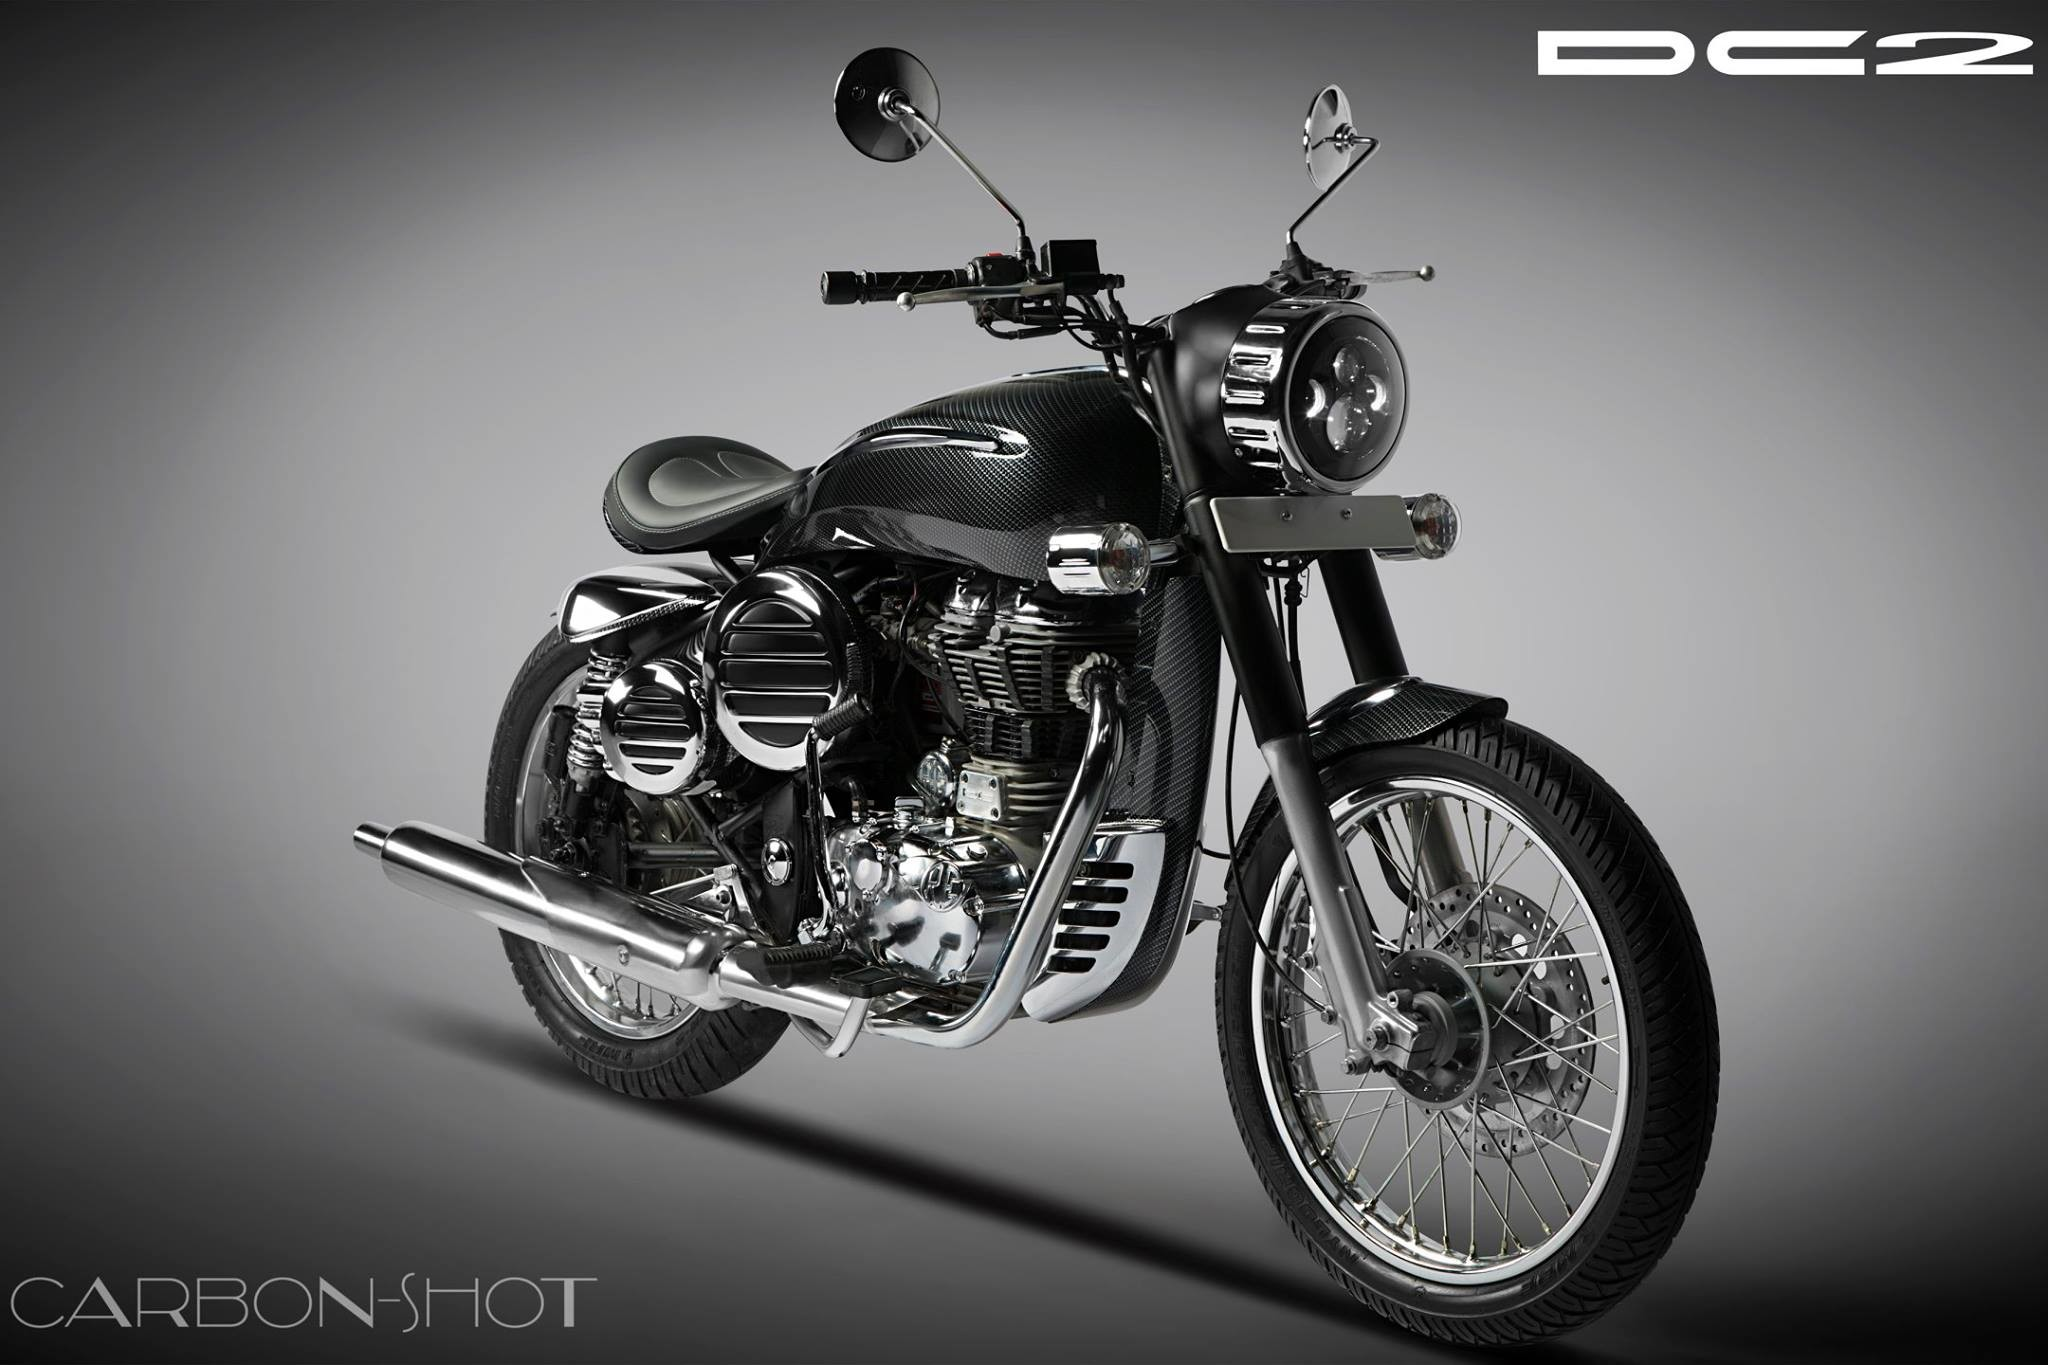 Iphone 6 Iphone Royal Enfield Wallpaper Hd